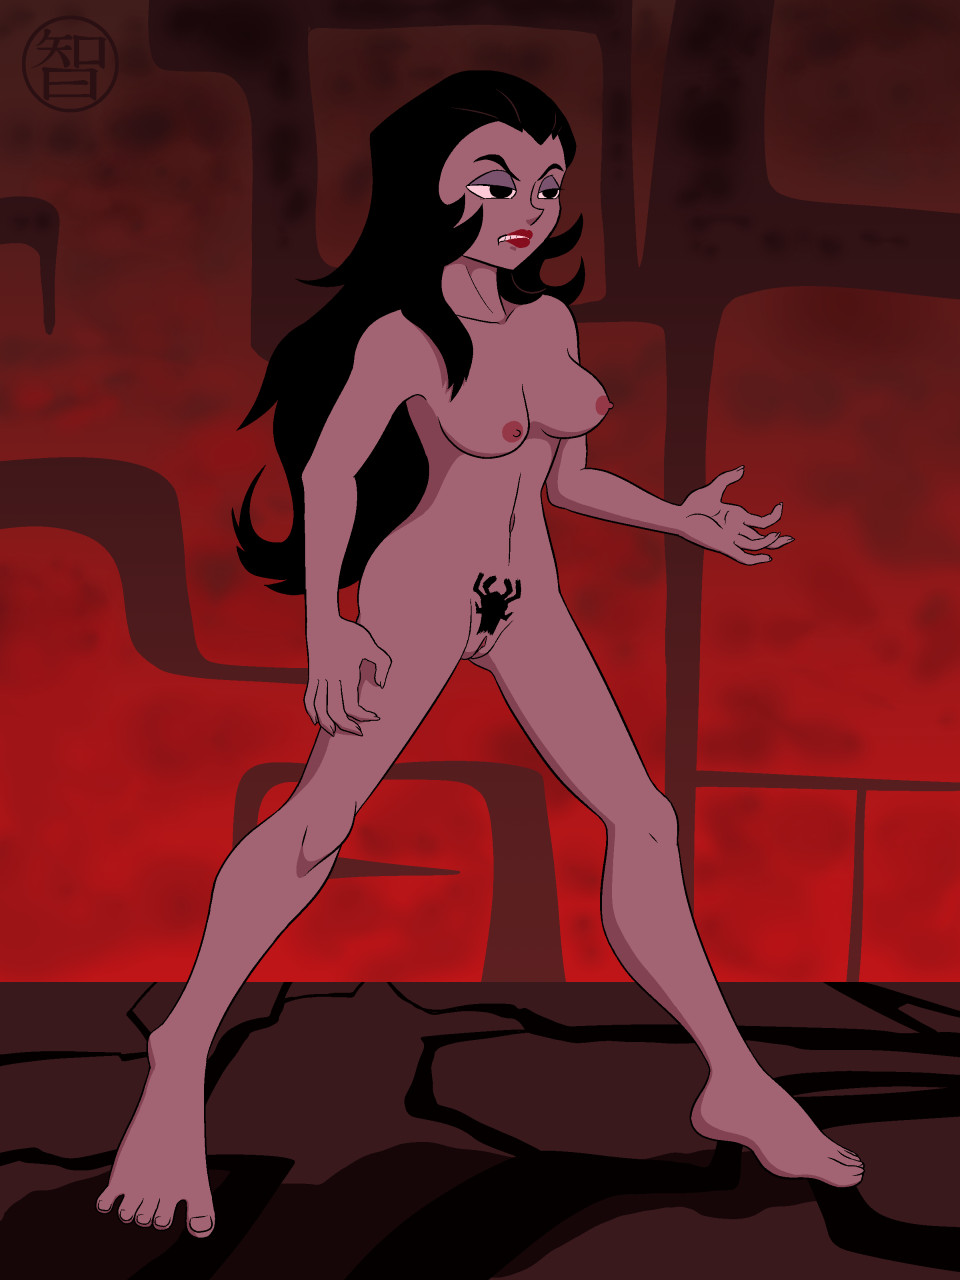 scotsman samurai jack and the The seven deadly sins anime diane